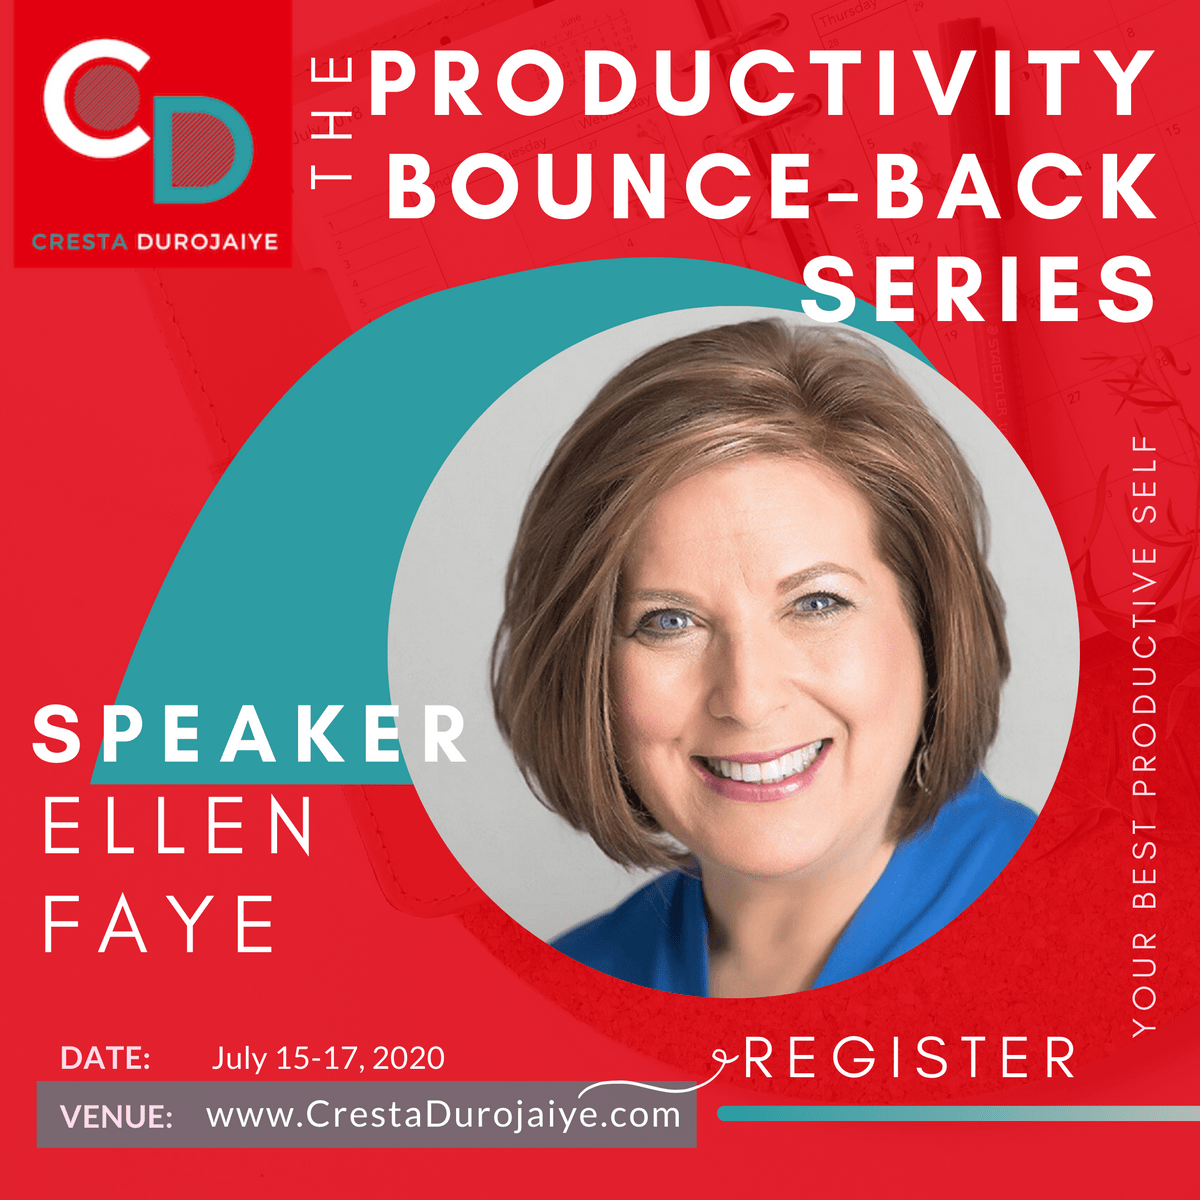 Ellen Faye is speaking at The Productivity Bounce Back Series